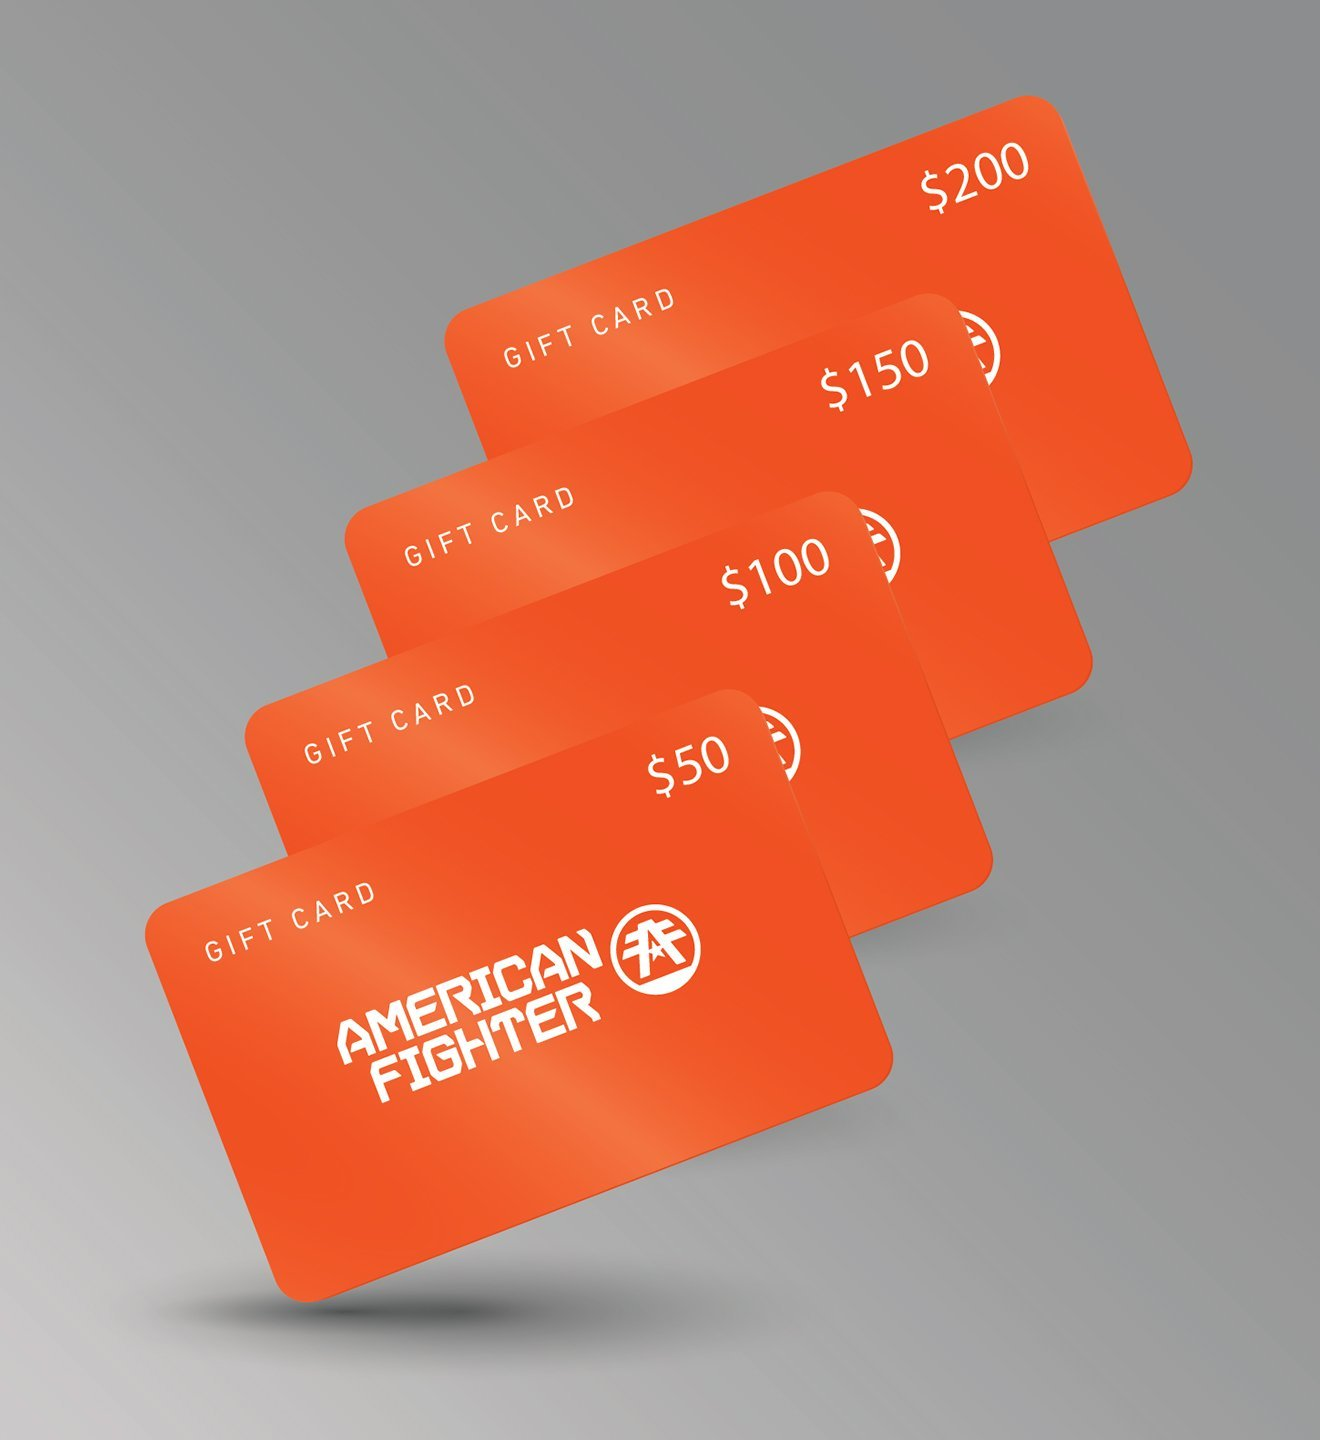 Gift Card - Gift Card - American Fighter